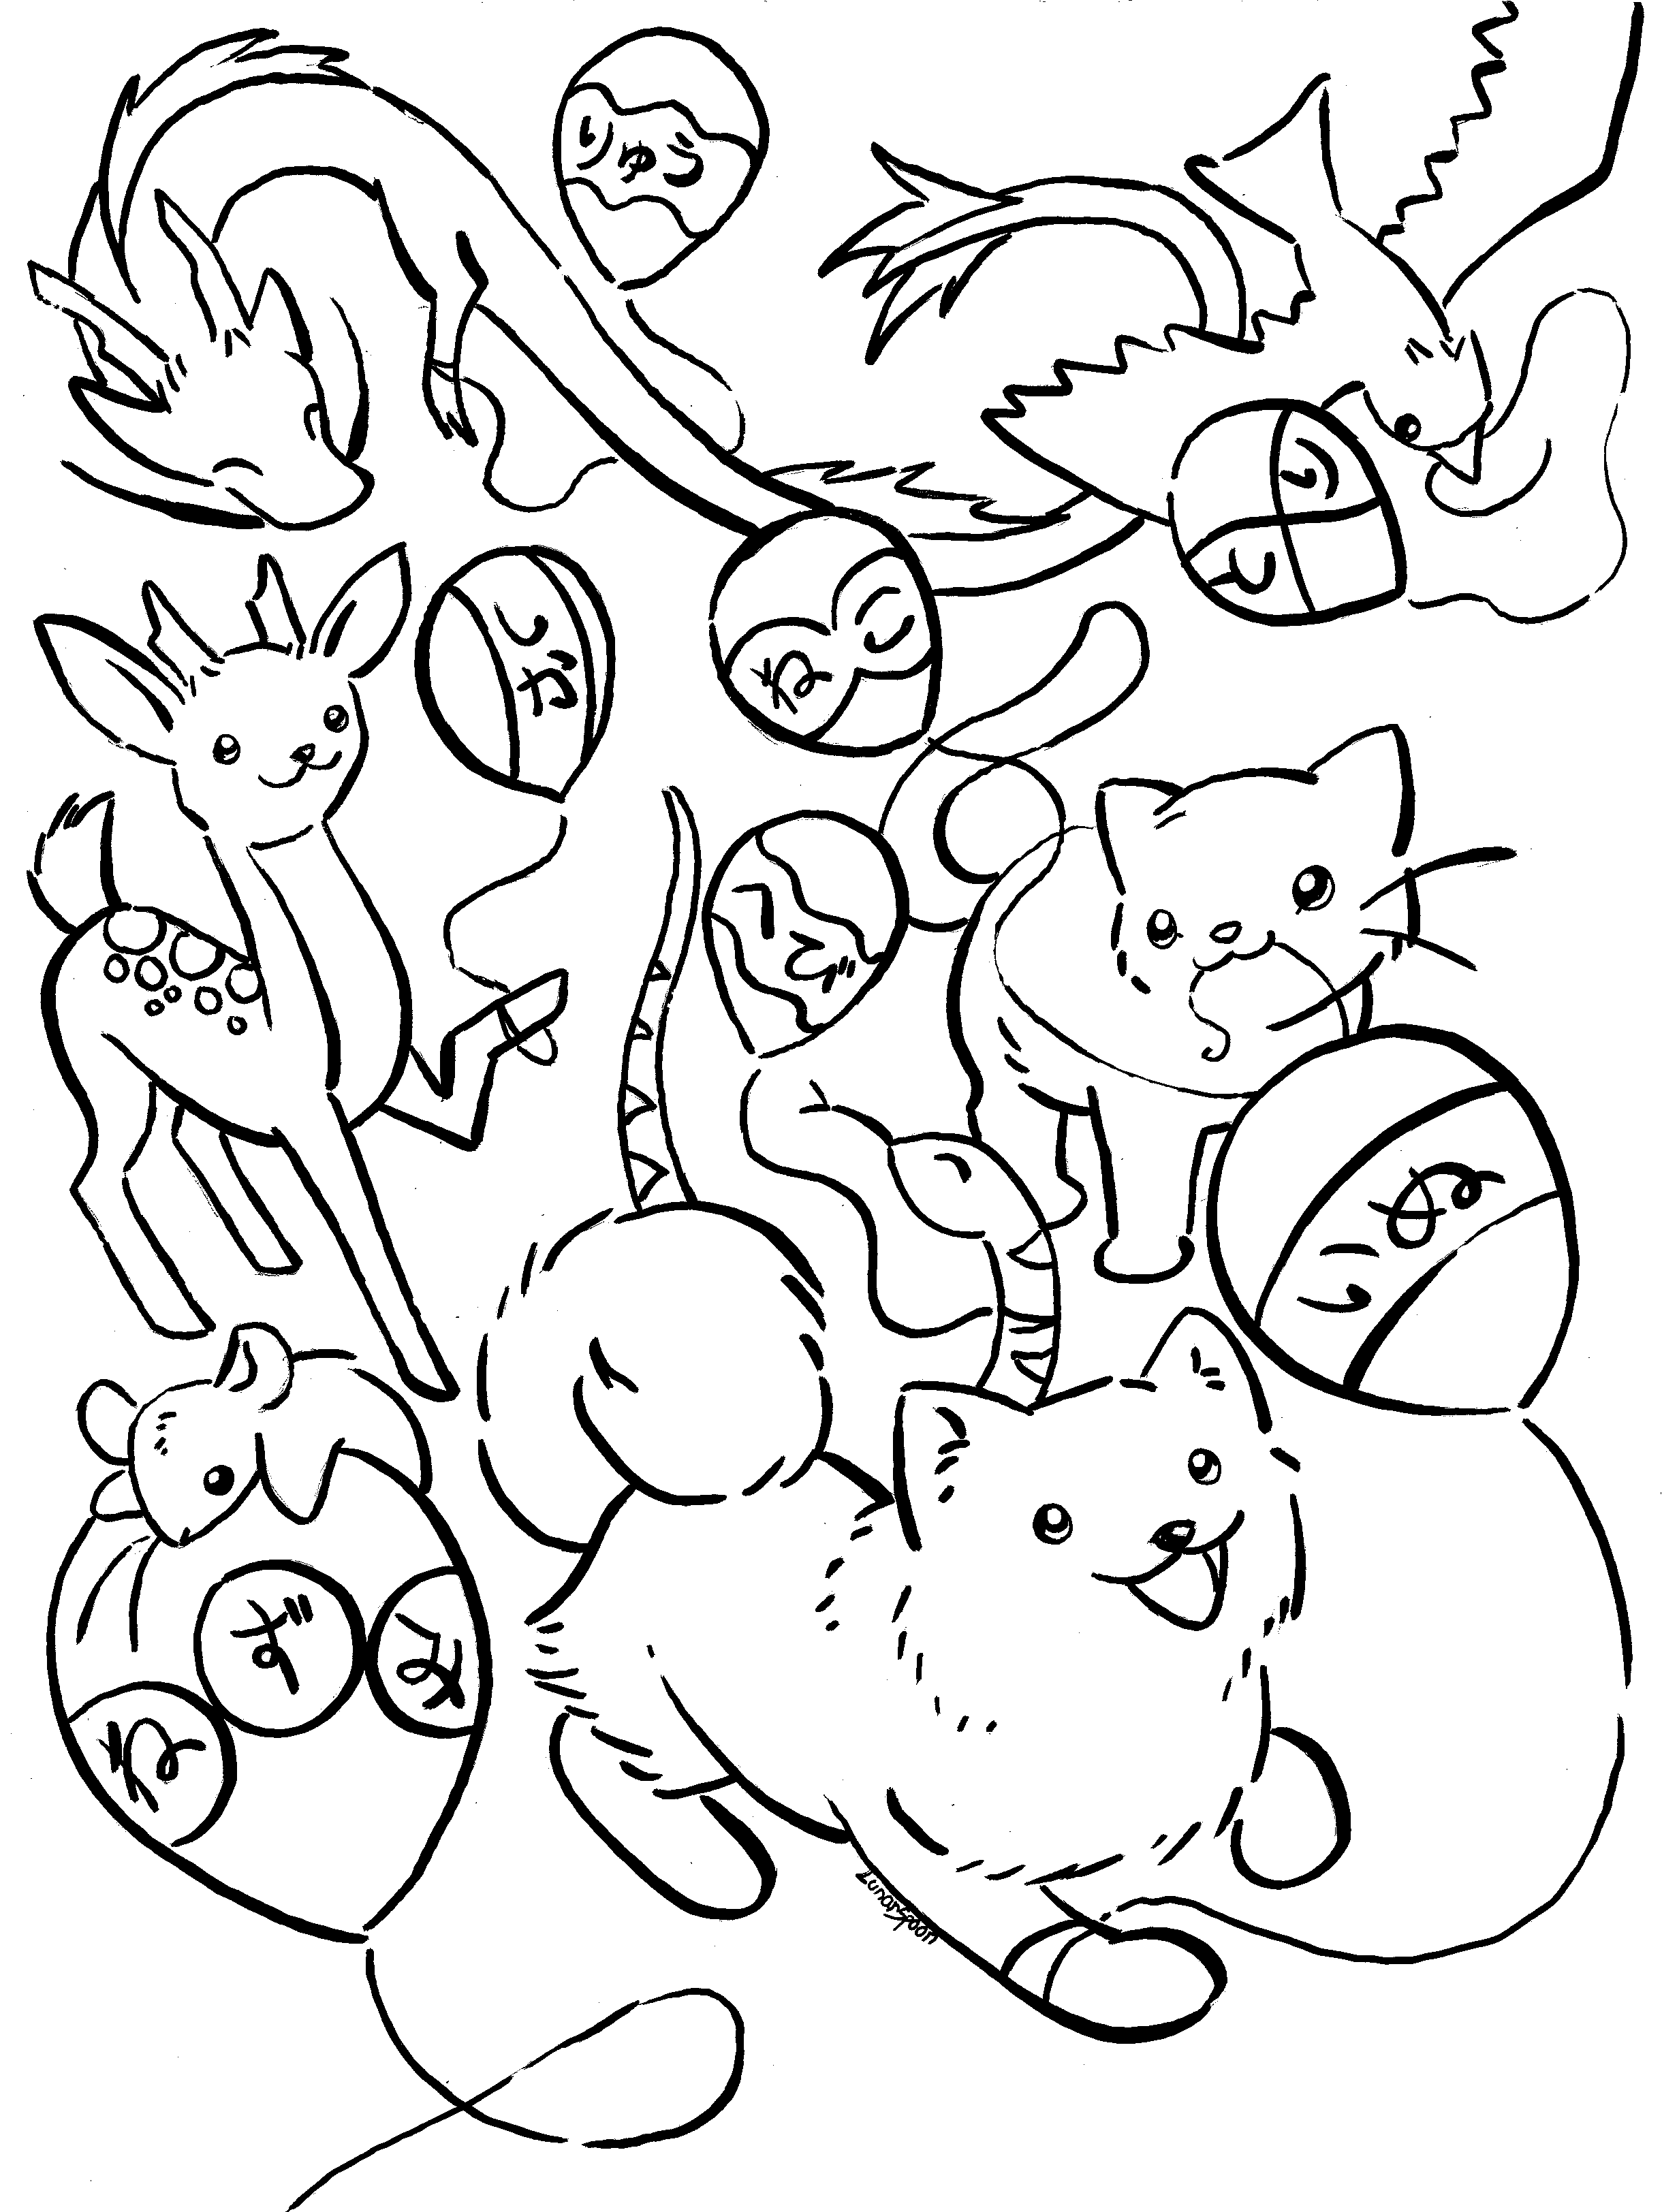 Japanese Animals Coloring Page by LunarSpoon on DeviantArt